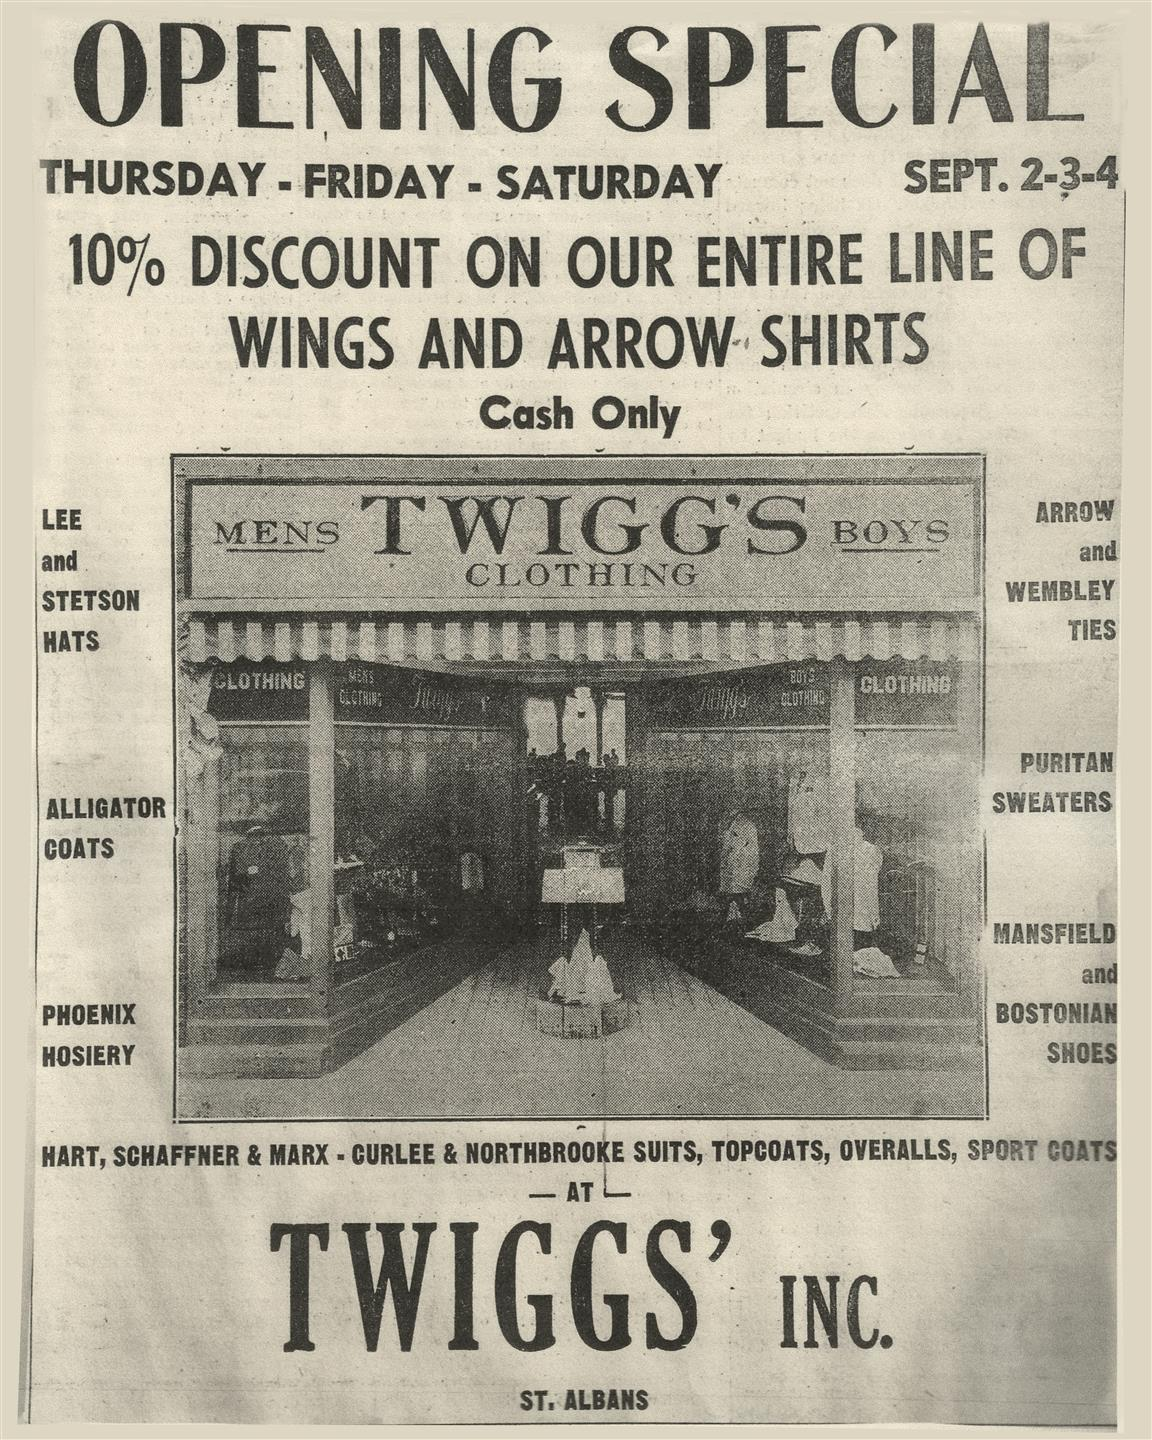 an old newspaper advertisement, with a coupon for twiggs